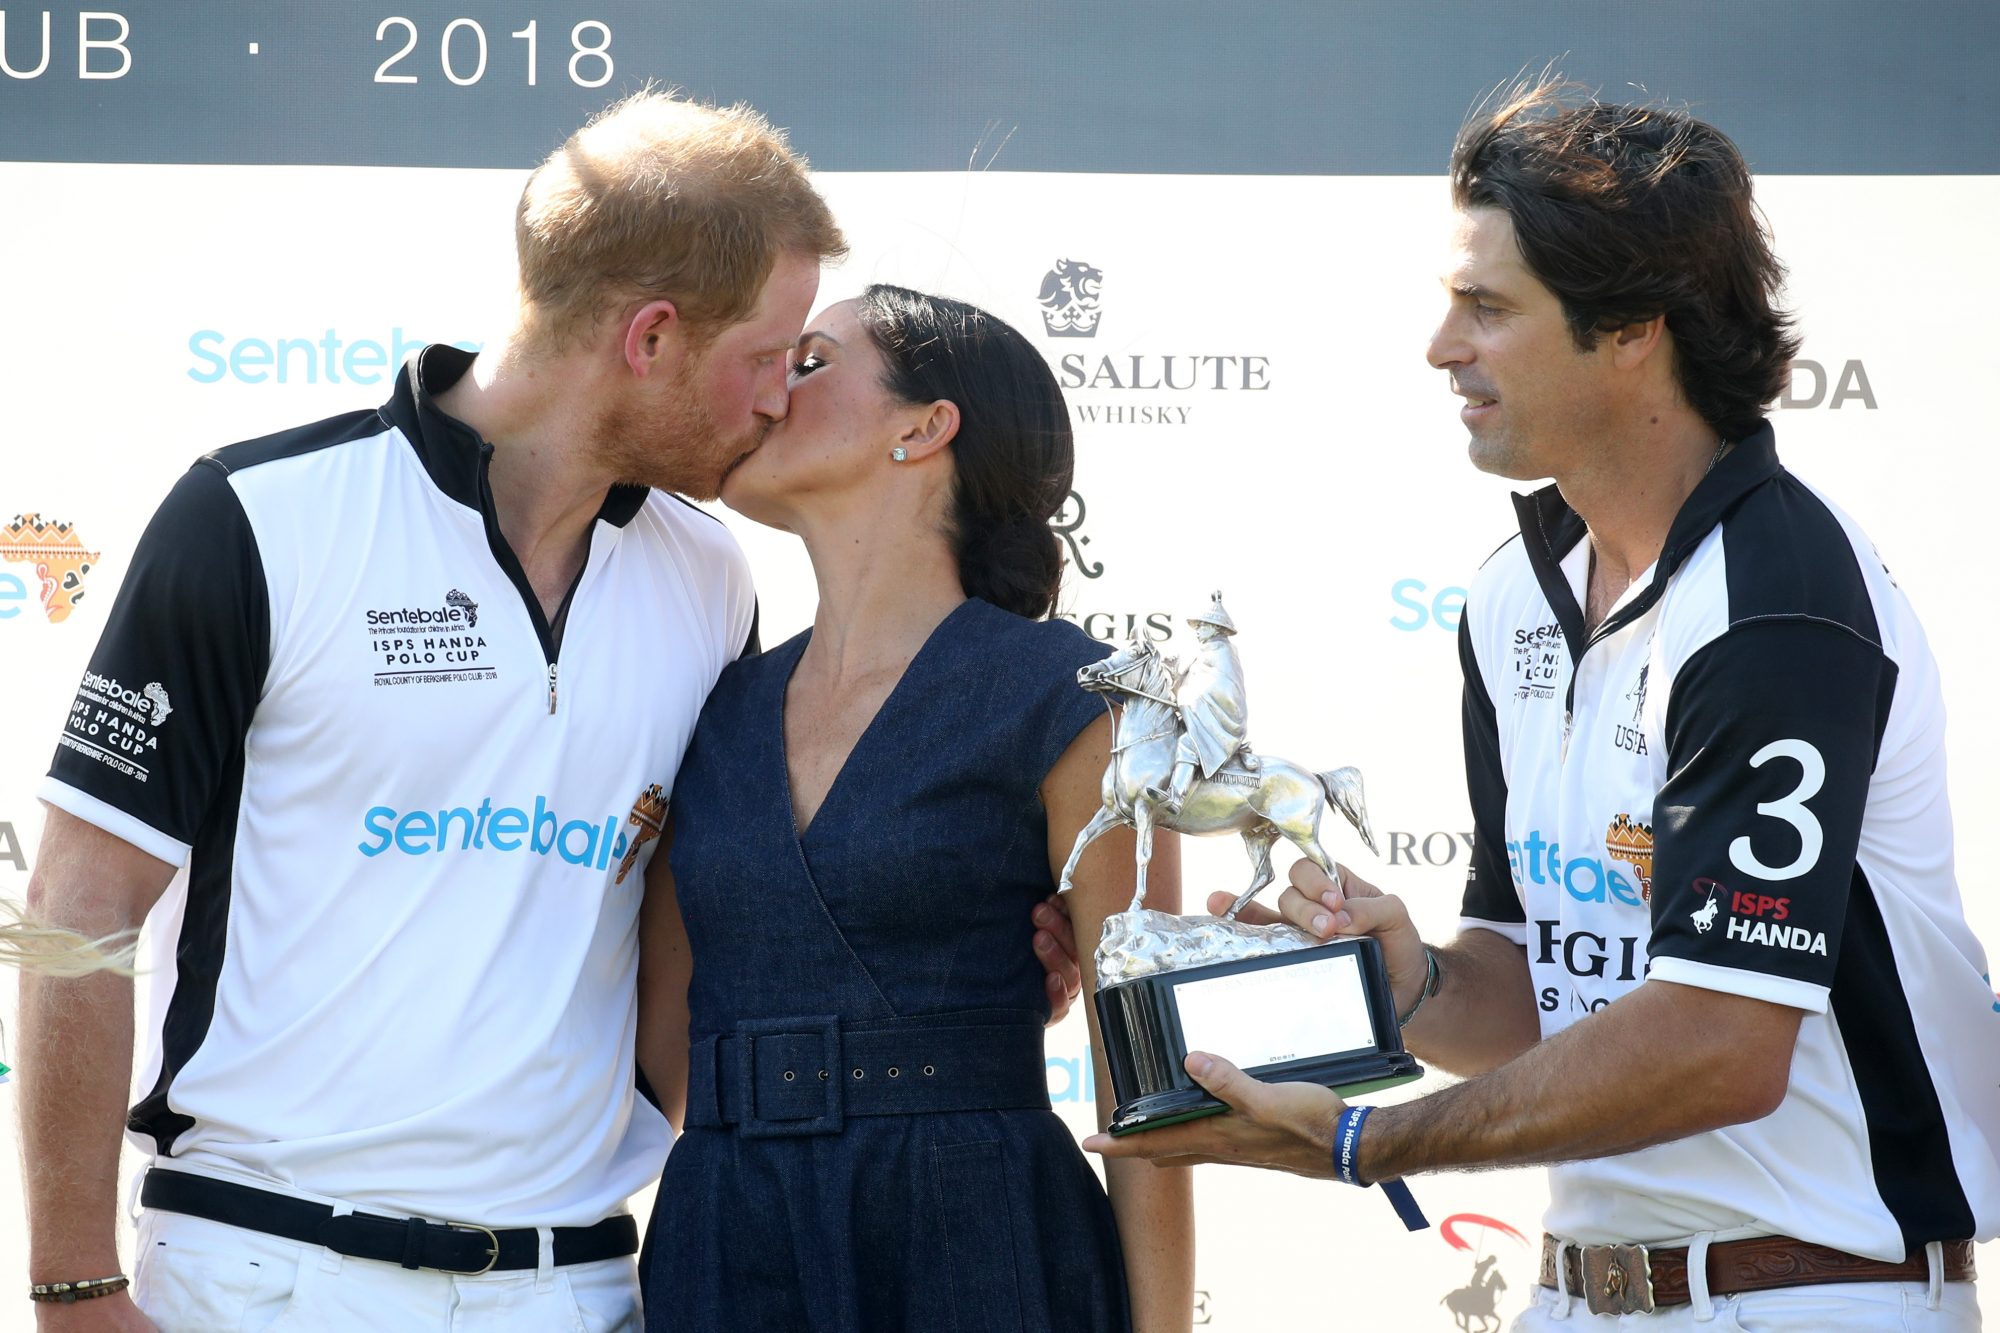 Prince Harry and Meghan Markle kissing at the Sentebale Polo 2018 charity event